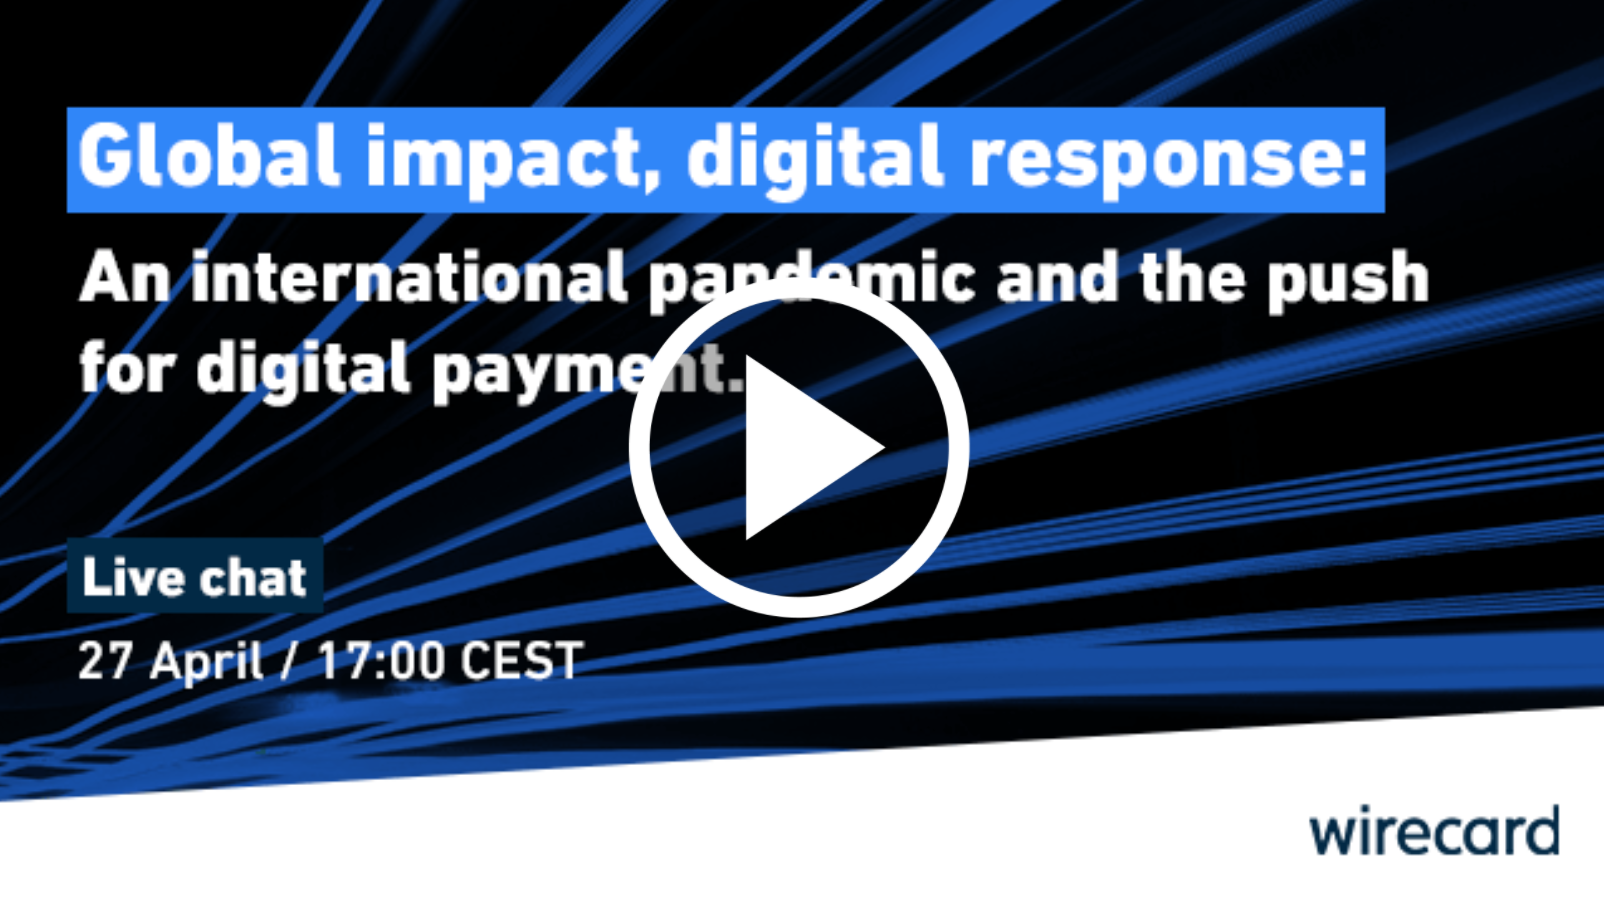 Global impact, digital response- a new tomorrow after the coronavirus